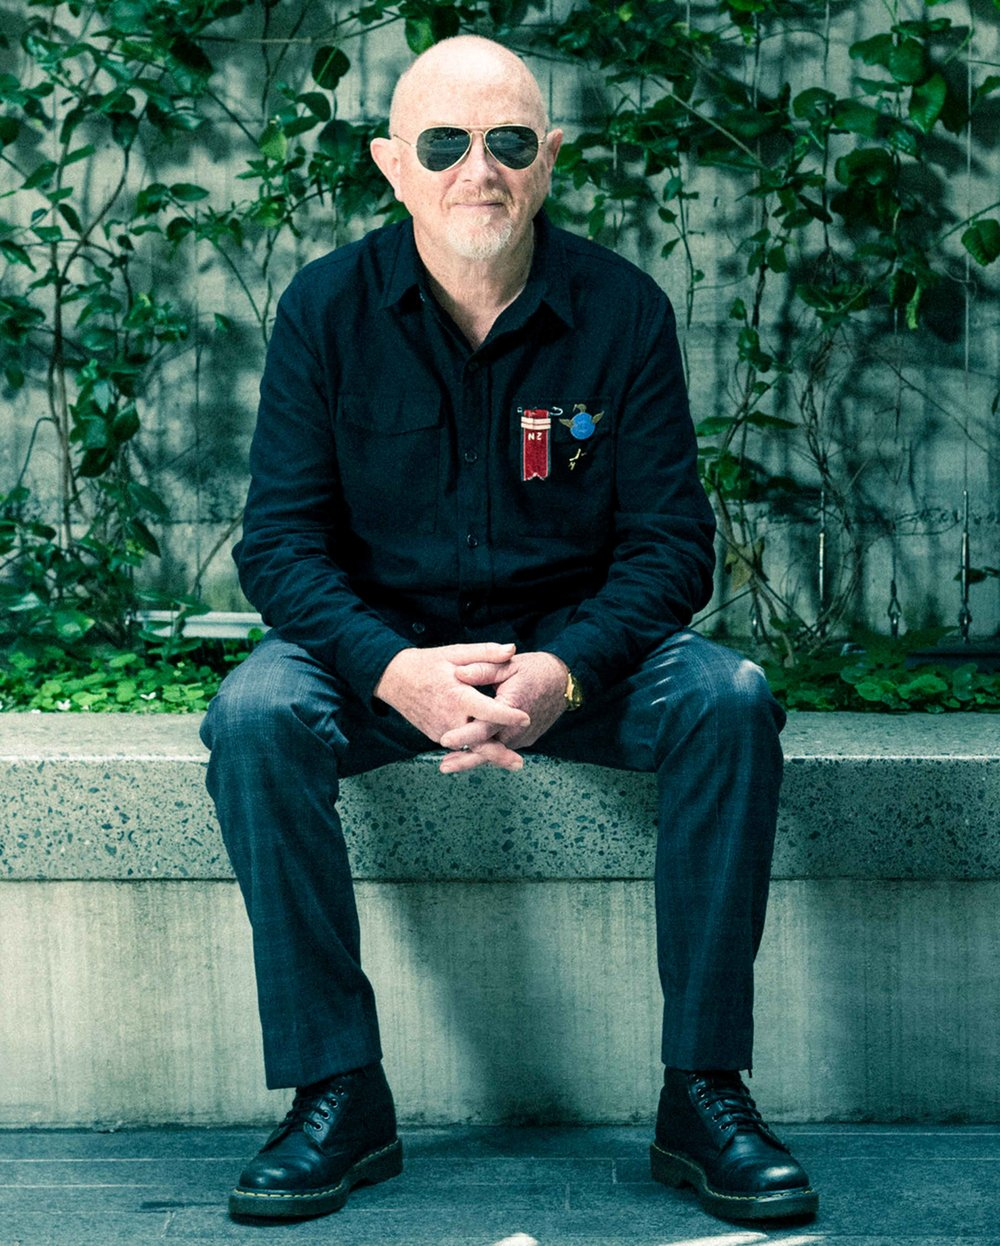 DAVE DOBBYN - Another headlining act for you to enjoy!